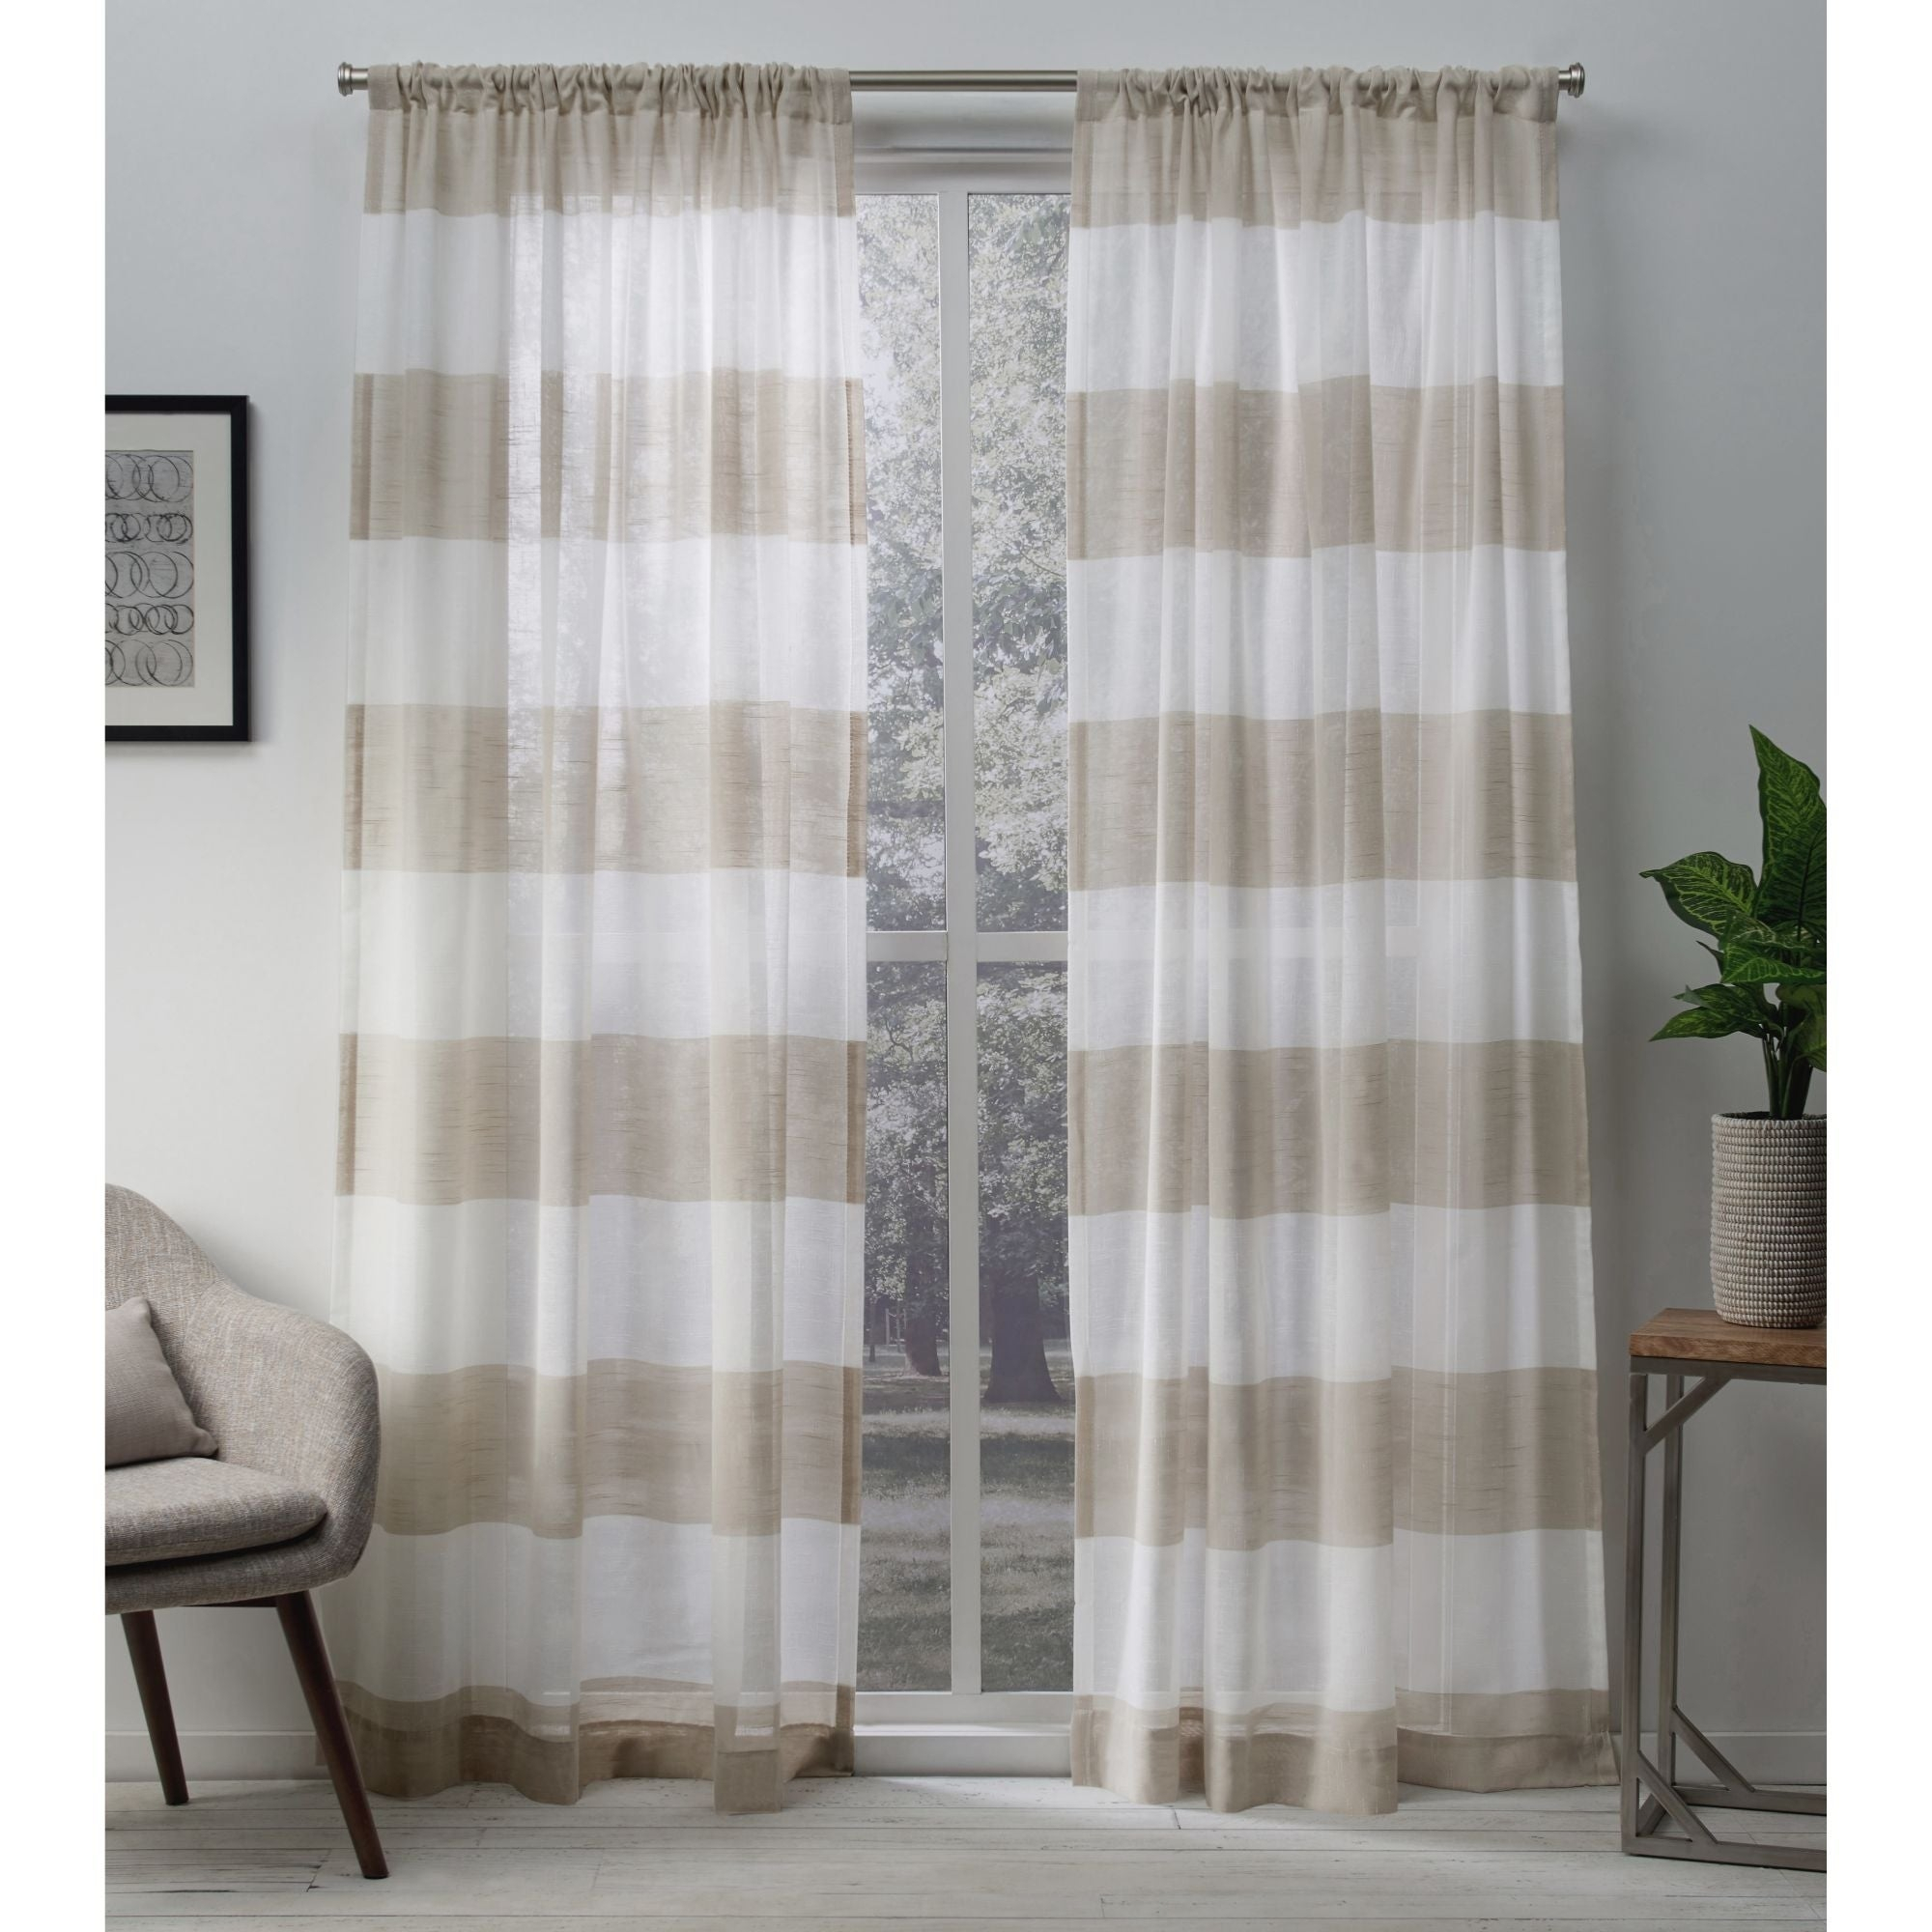 Porch & Den Ocean Sheer Linen Curtain Panel Pair With Rod Pocket In Curtain Panel Pairs (View 7 of 20)